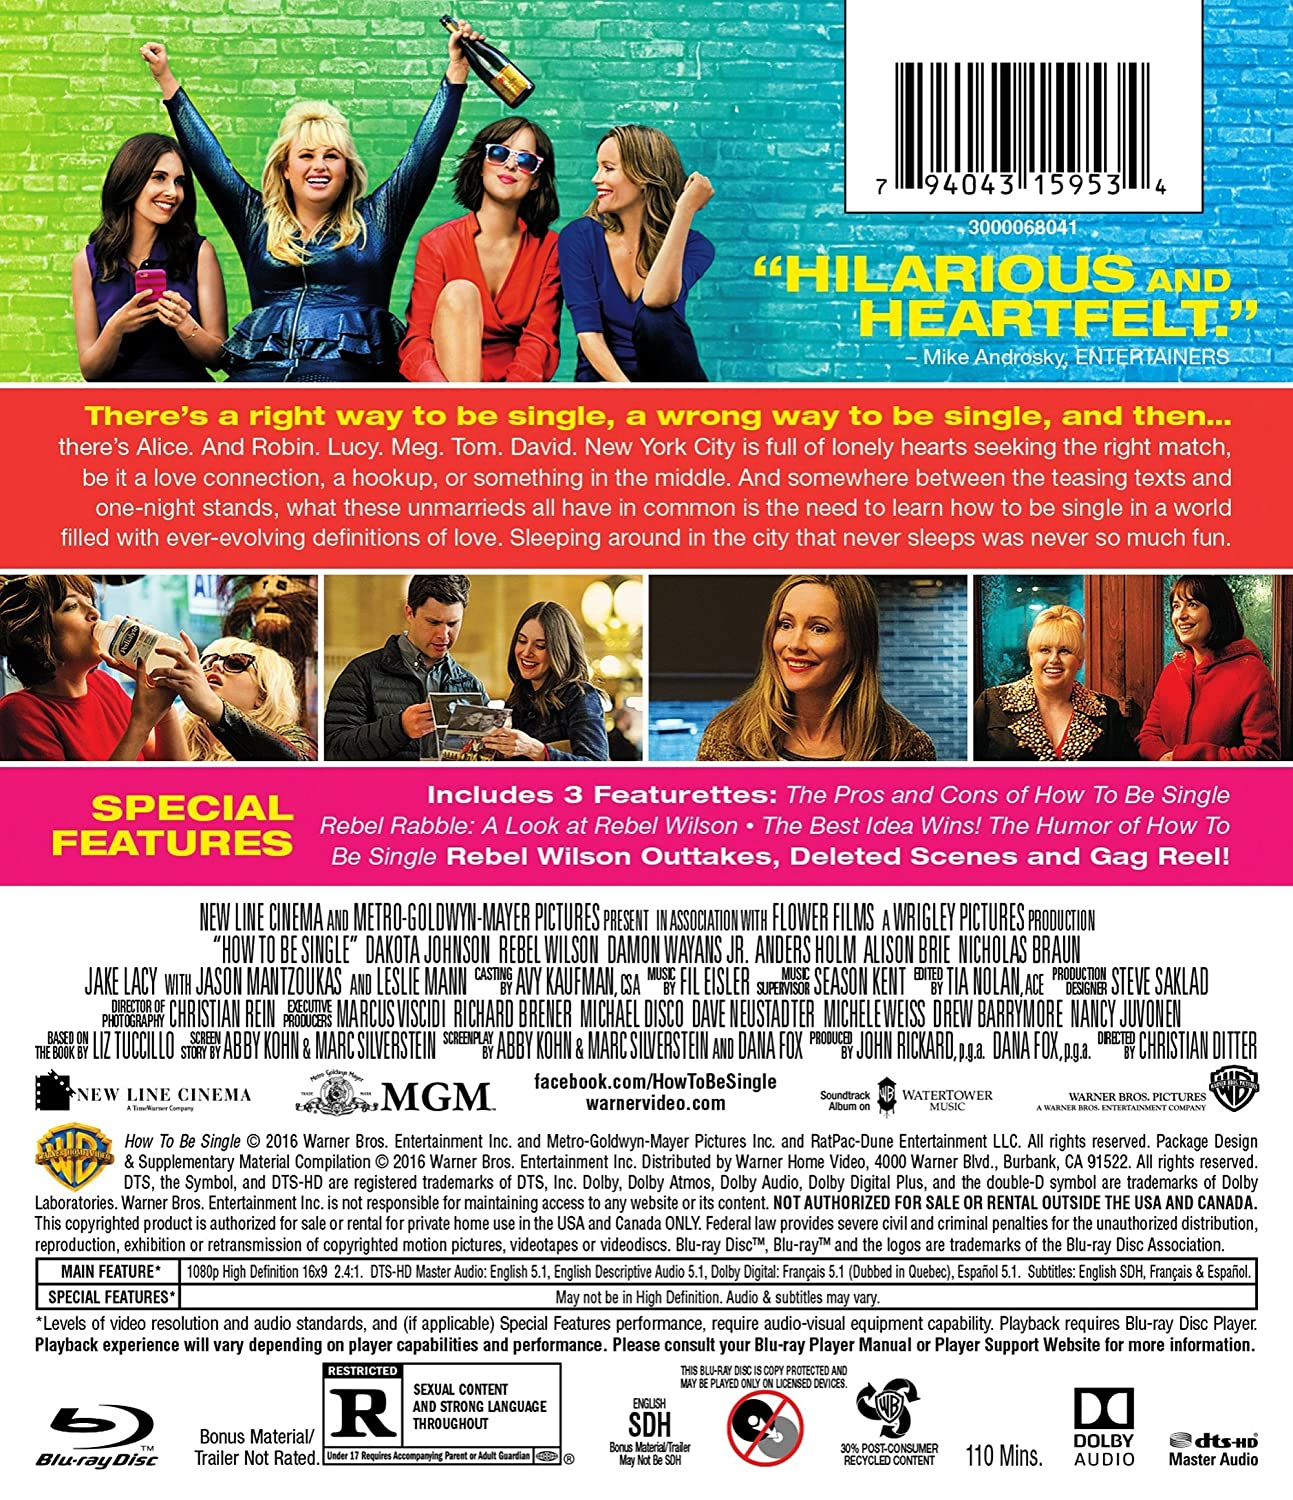 Amazon how to be single blu ray dana fox marcus viscidi amazon how to be single blu ray dana fox marcus viscidi john rickard richard brener michael disco dave neustadter michele weiss ccuart Choice Image